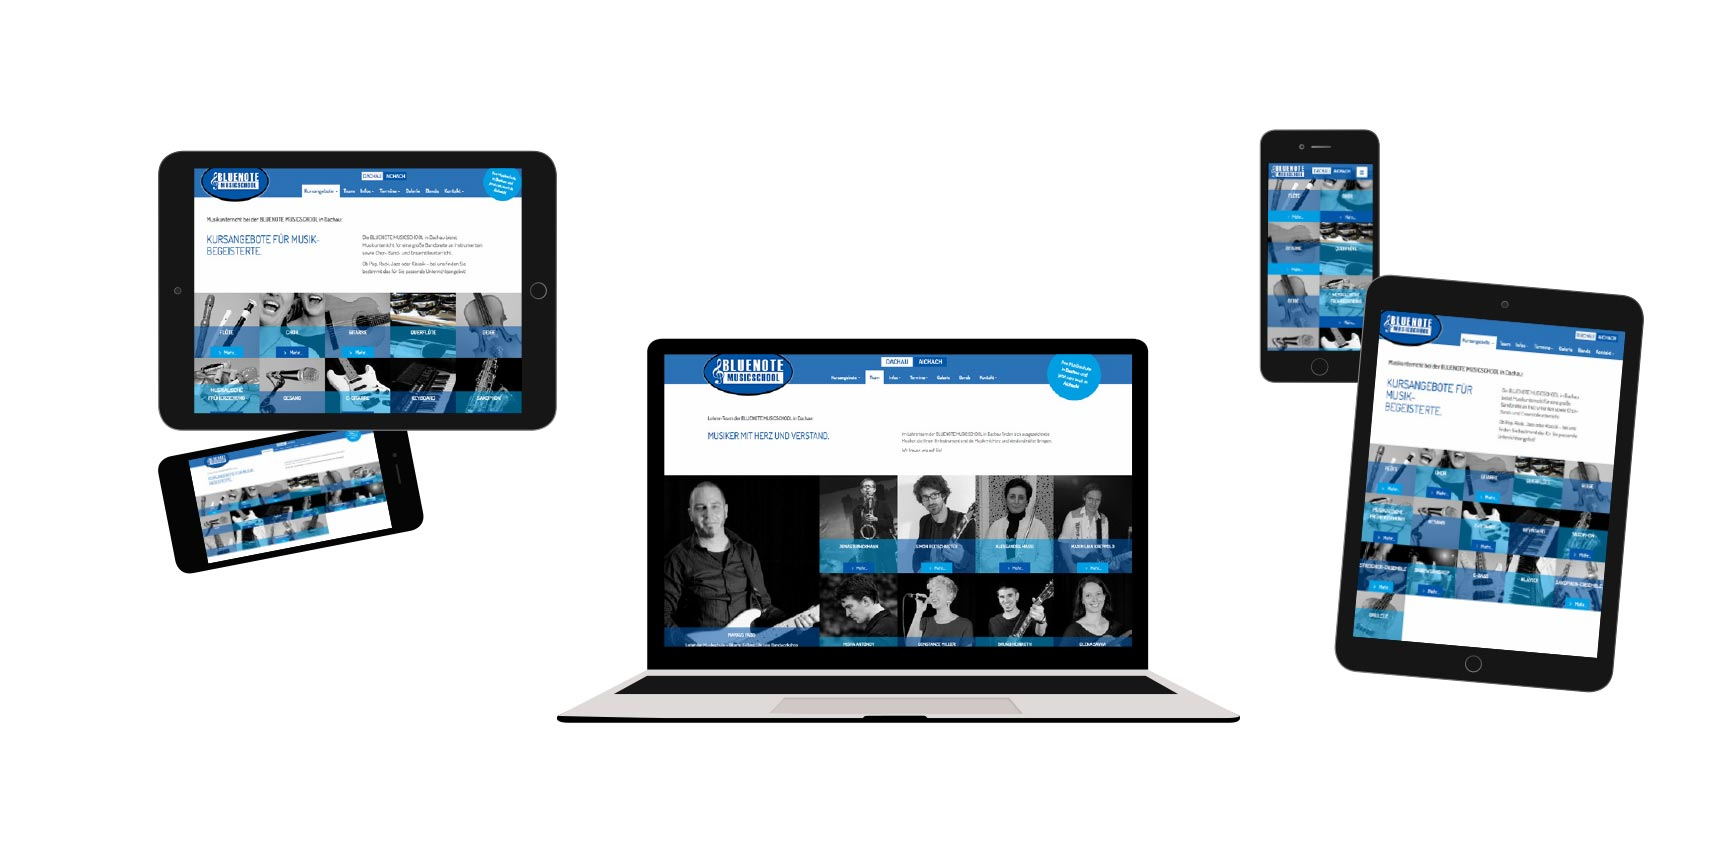 Bluenotemusicschool in Dachau und Aichach Website